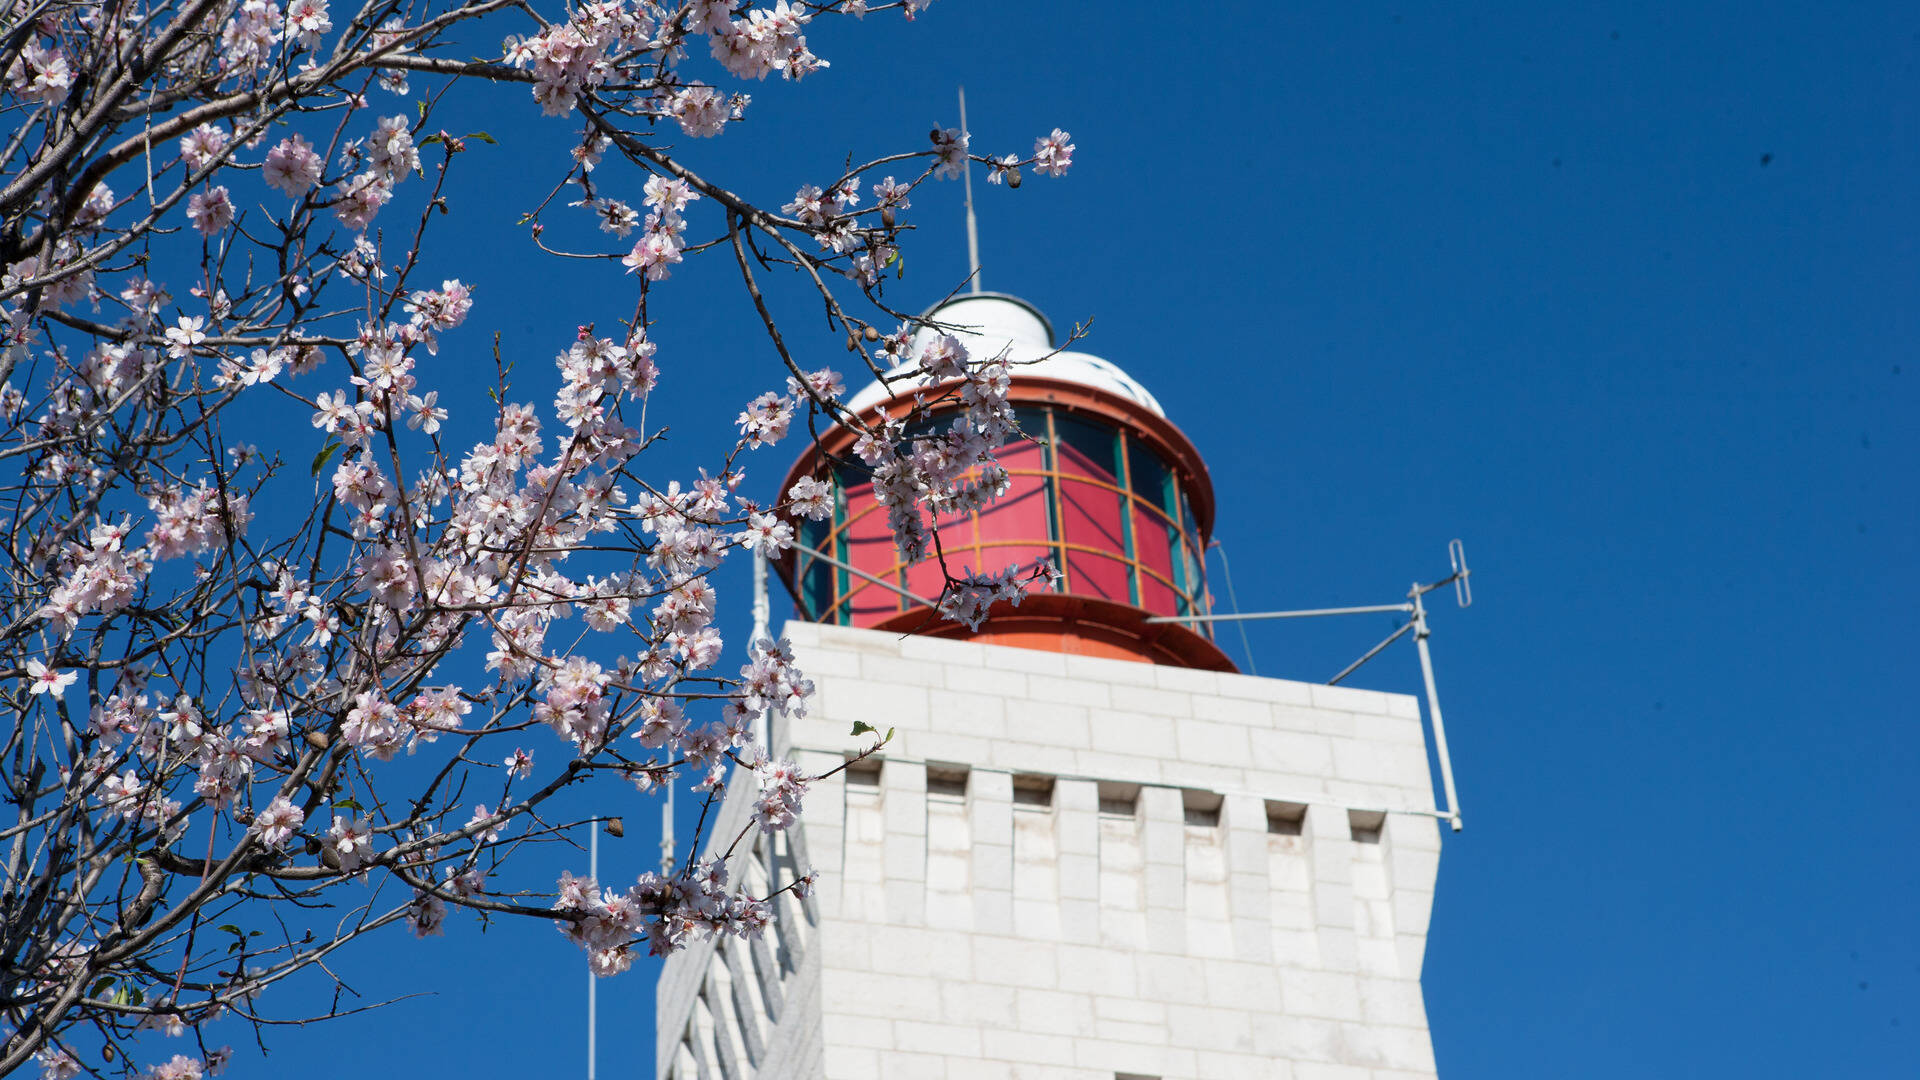 Garoupe lighthouse and almond tree in flowers